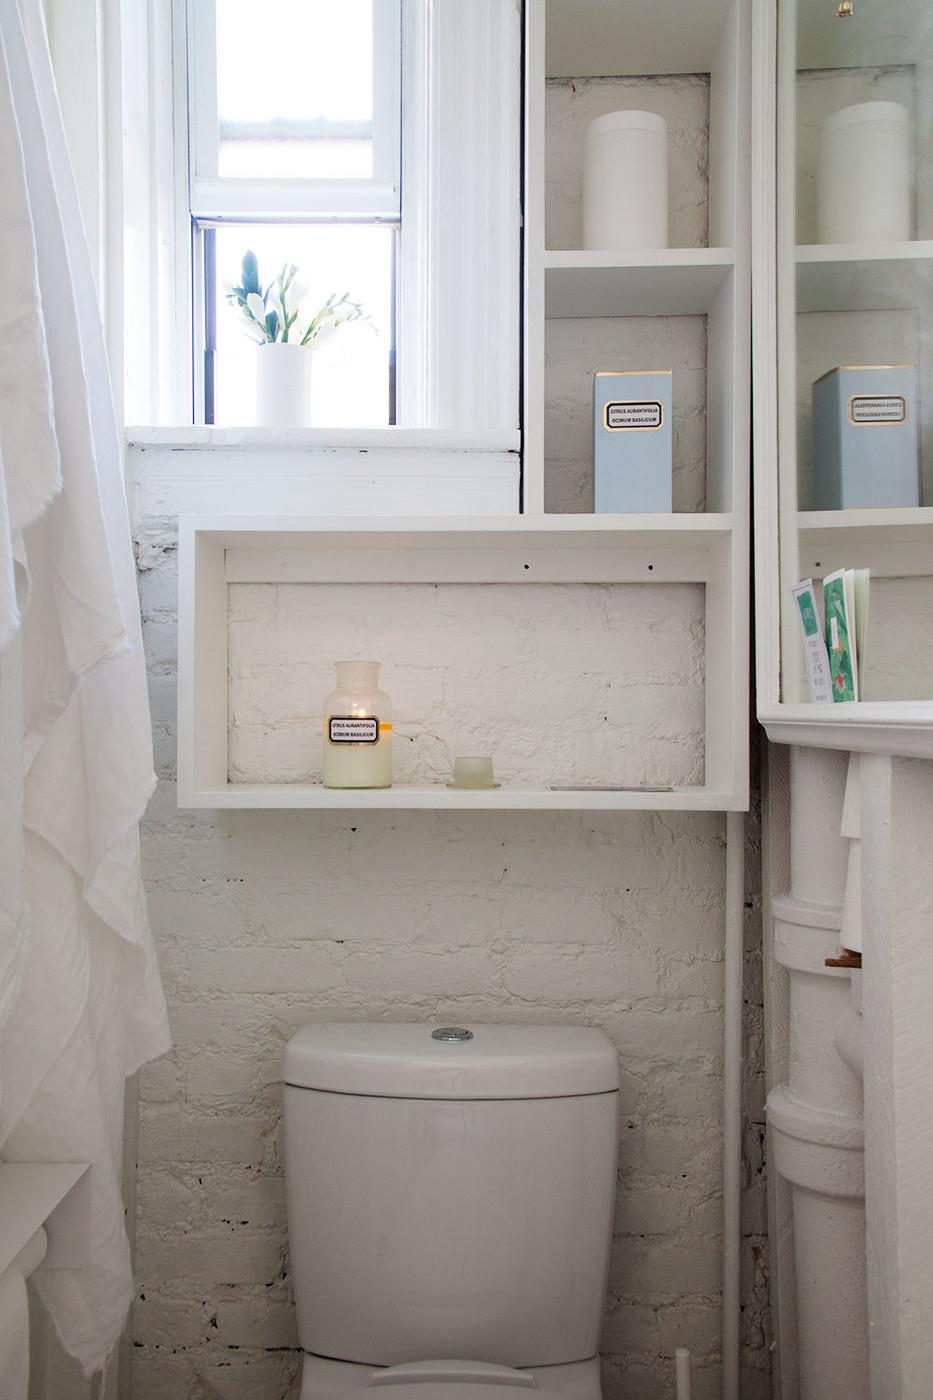 Small bright and airy bathroom with a painted brick wall